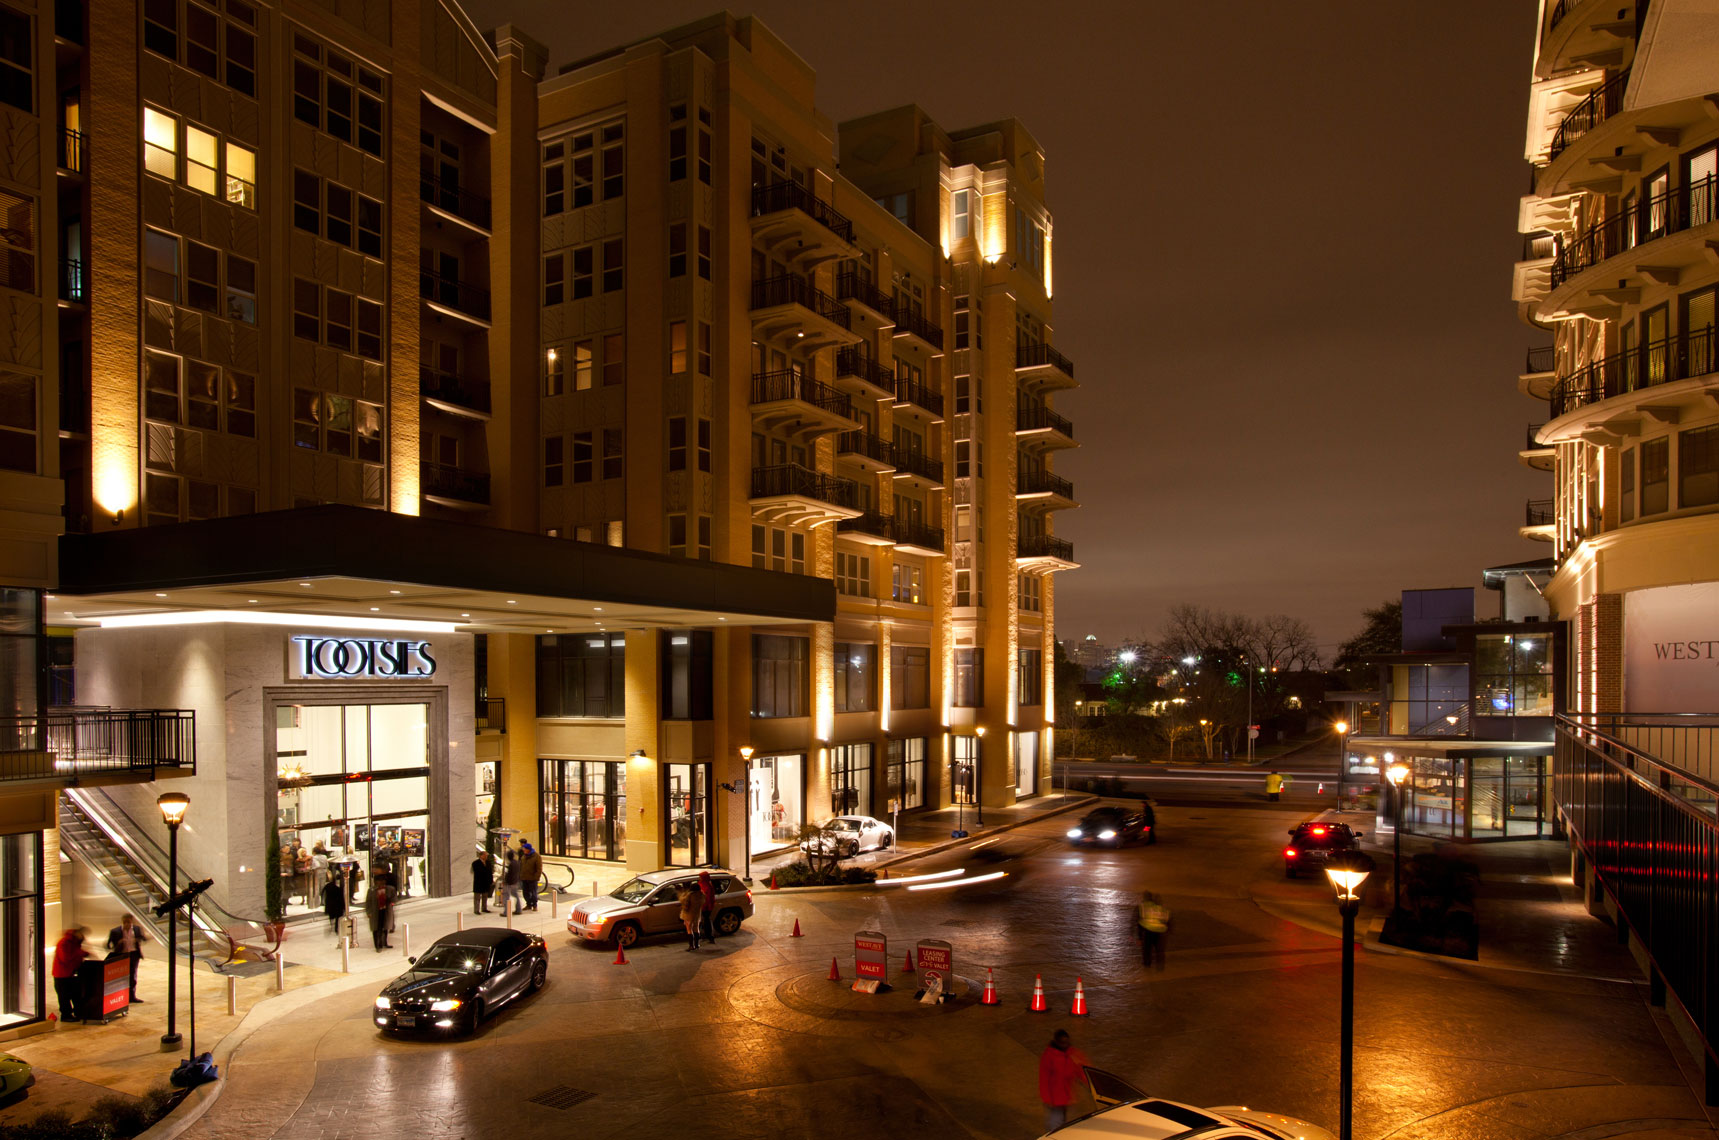 an architectural photo of a retail shopping center at night in Houston Texas